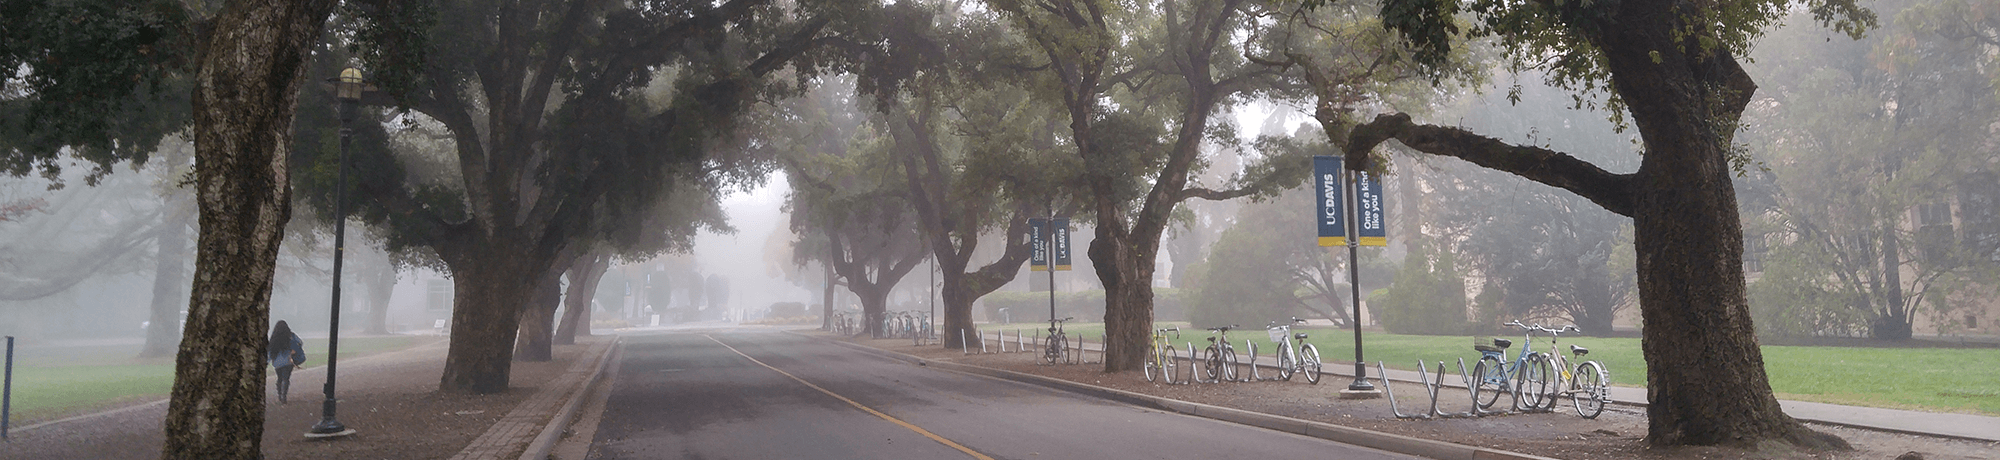 Campus during a foggy day